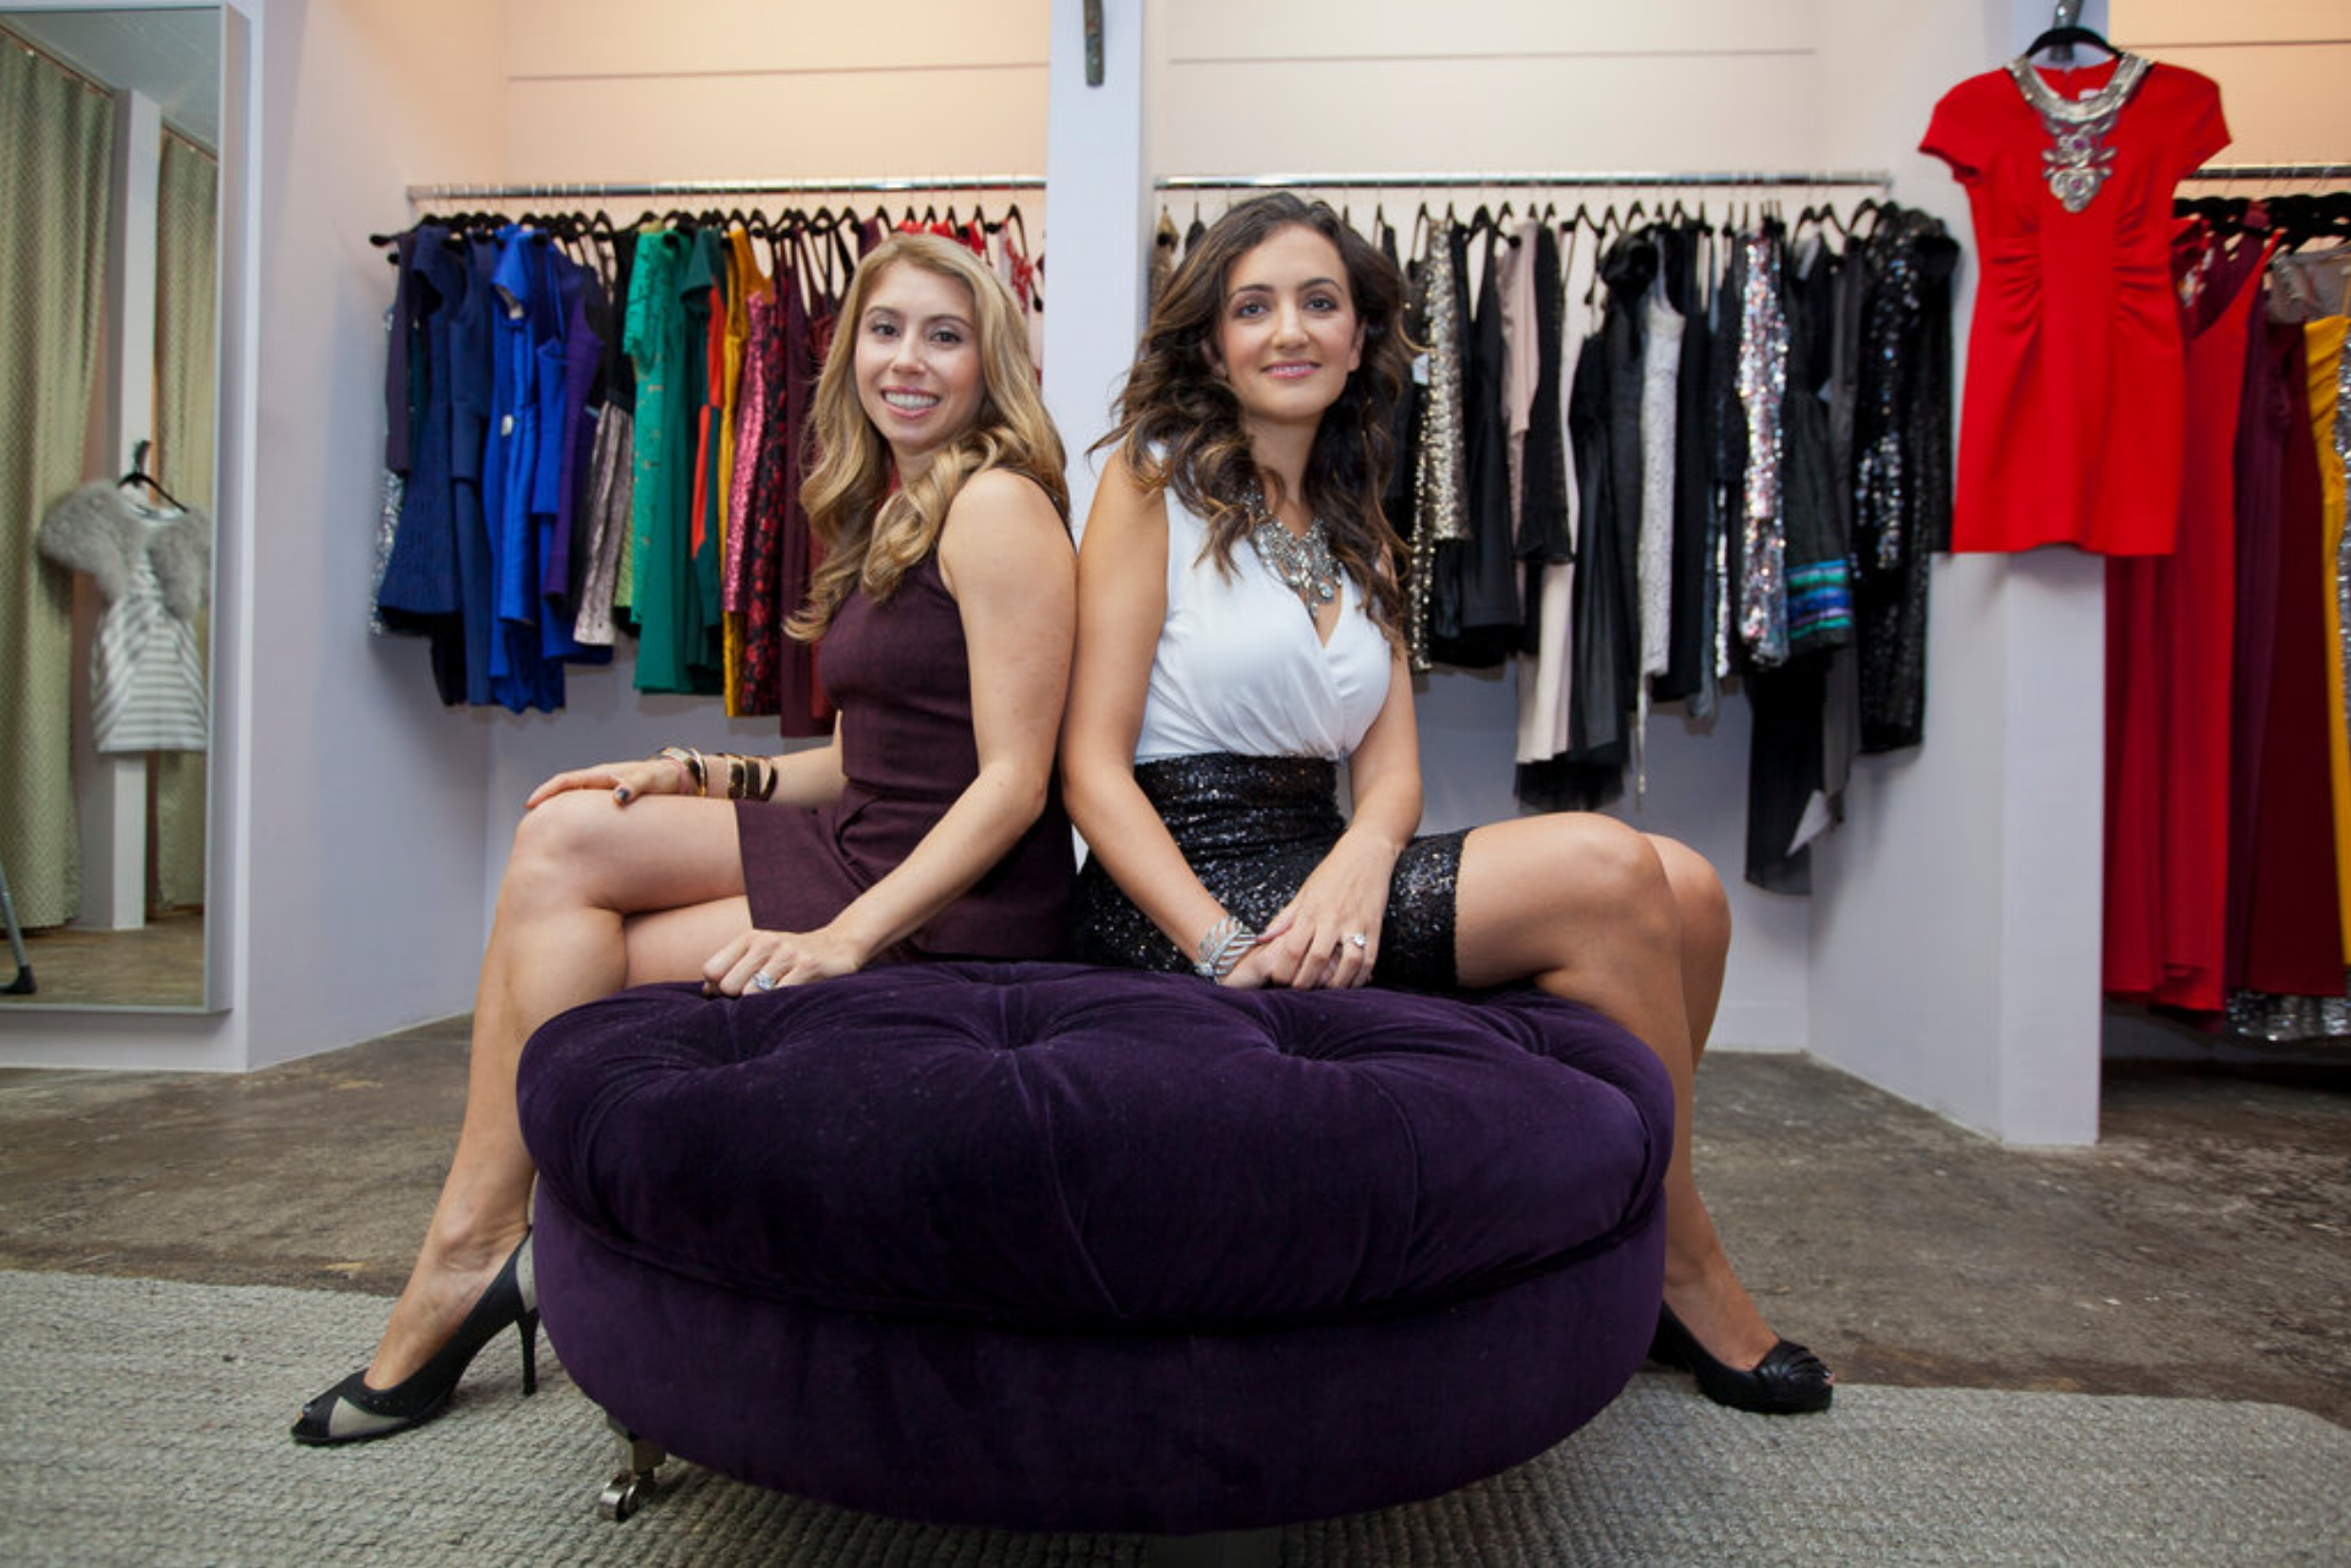 Rent the Runway CEO: Giving All Employees The Same Benefits Is The 'Right Thing To Do' Haley Draznin, CNN Money  [VIDEO]When Jennifer Hyman co-founded Rent the Runway, she sought to disrupt an industry and change the way women shopped for clothes. Now she's focused on shaking things up within her own company.